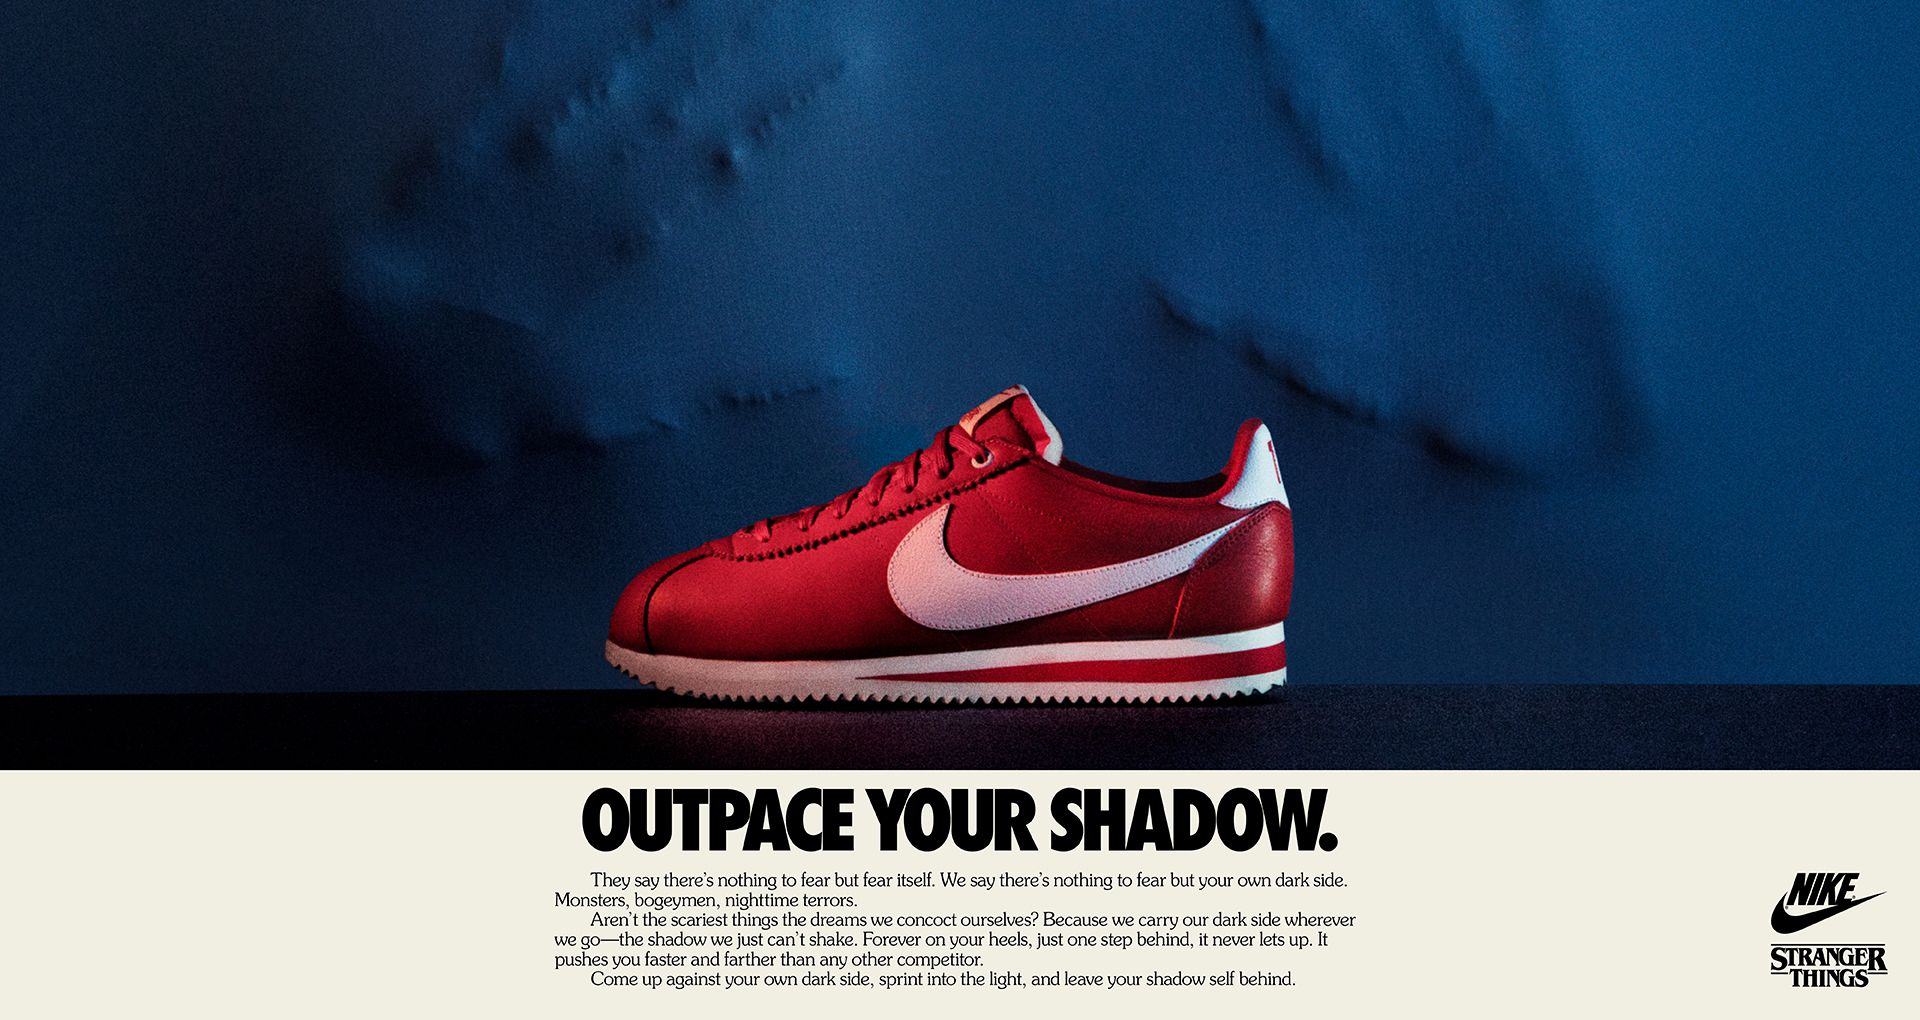 Nike x Stranger Things Cortez 'OG Collection' Release Date  Nike⁠+ SNKRS